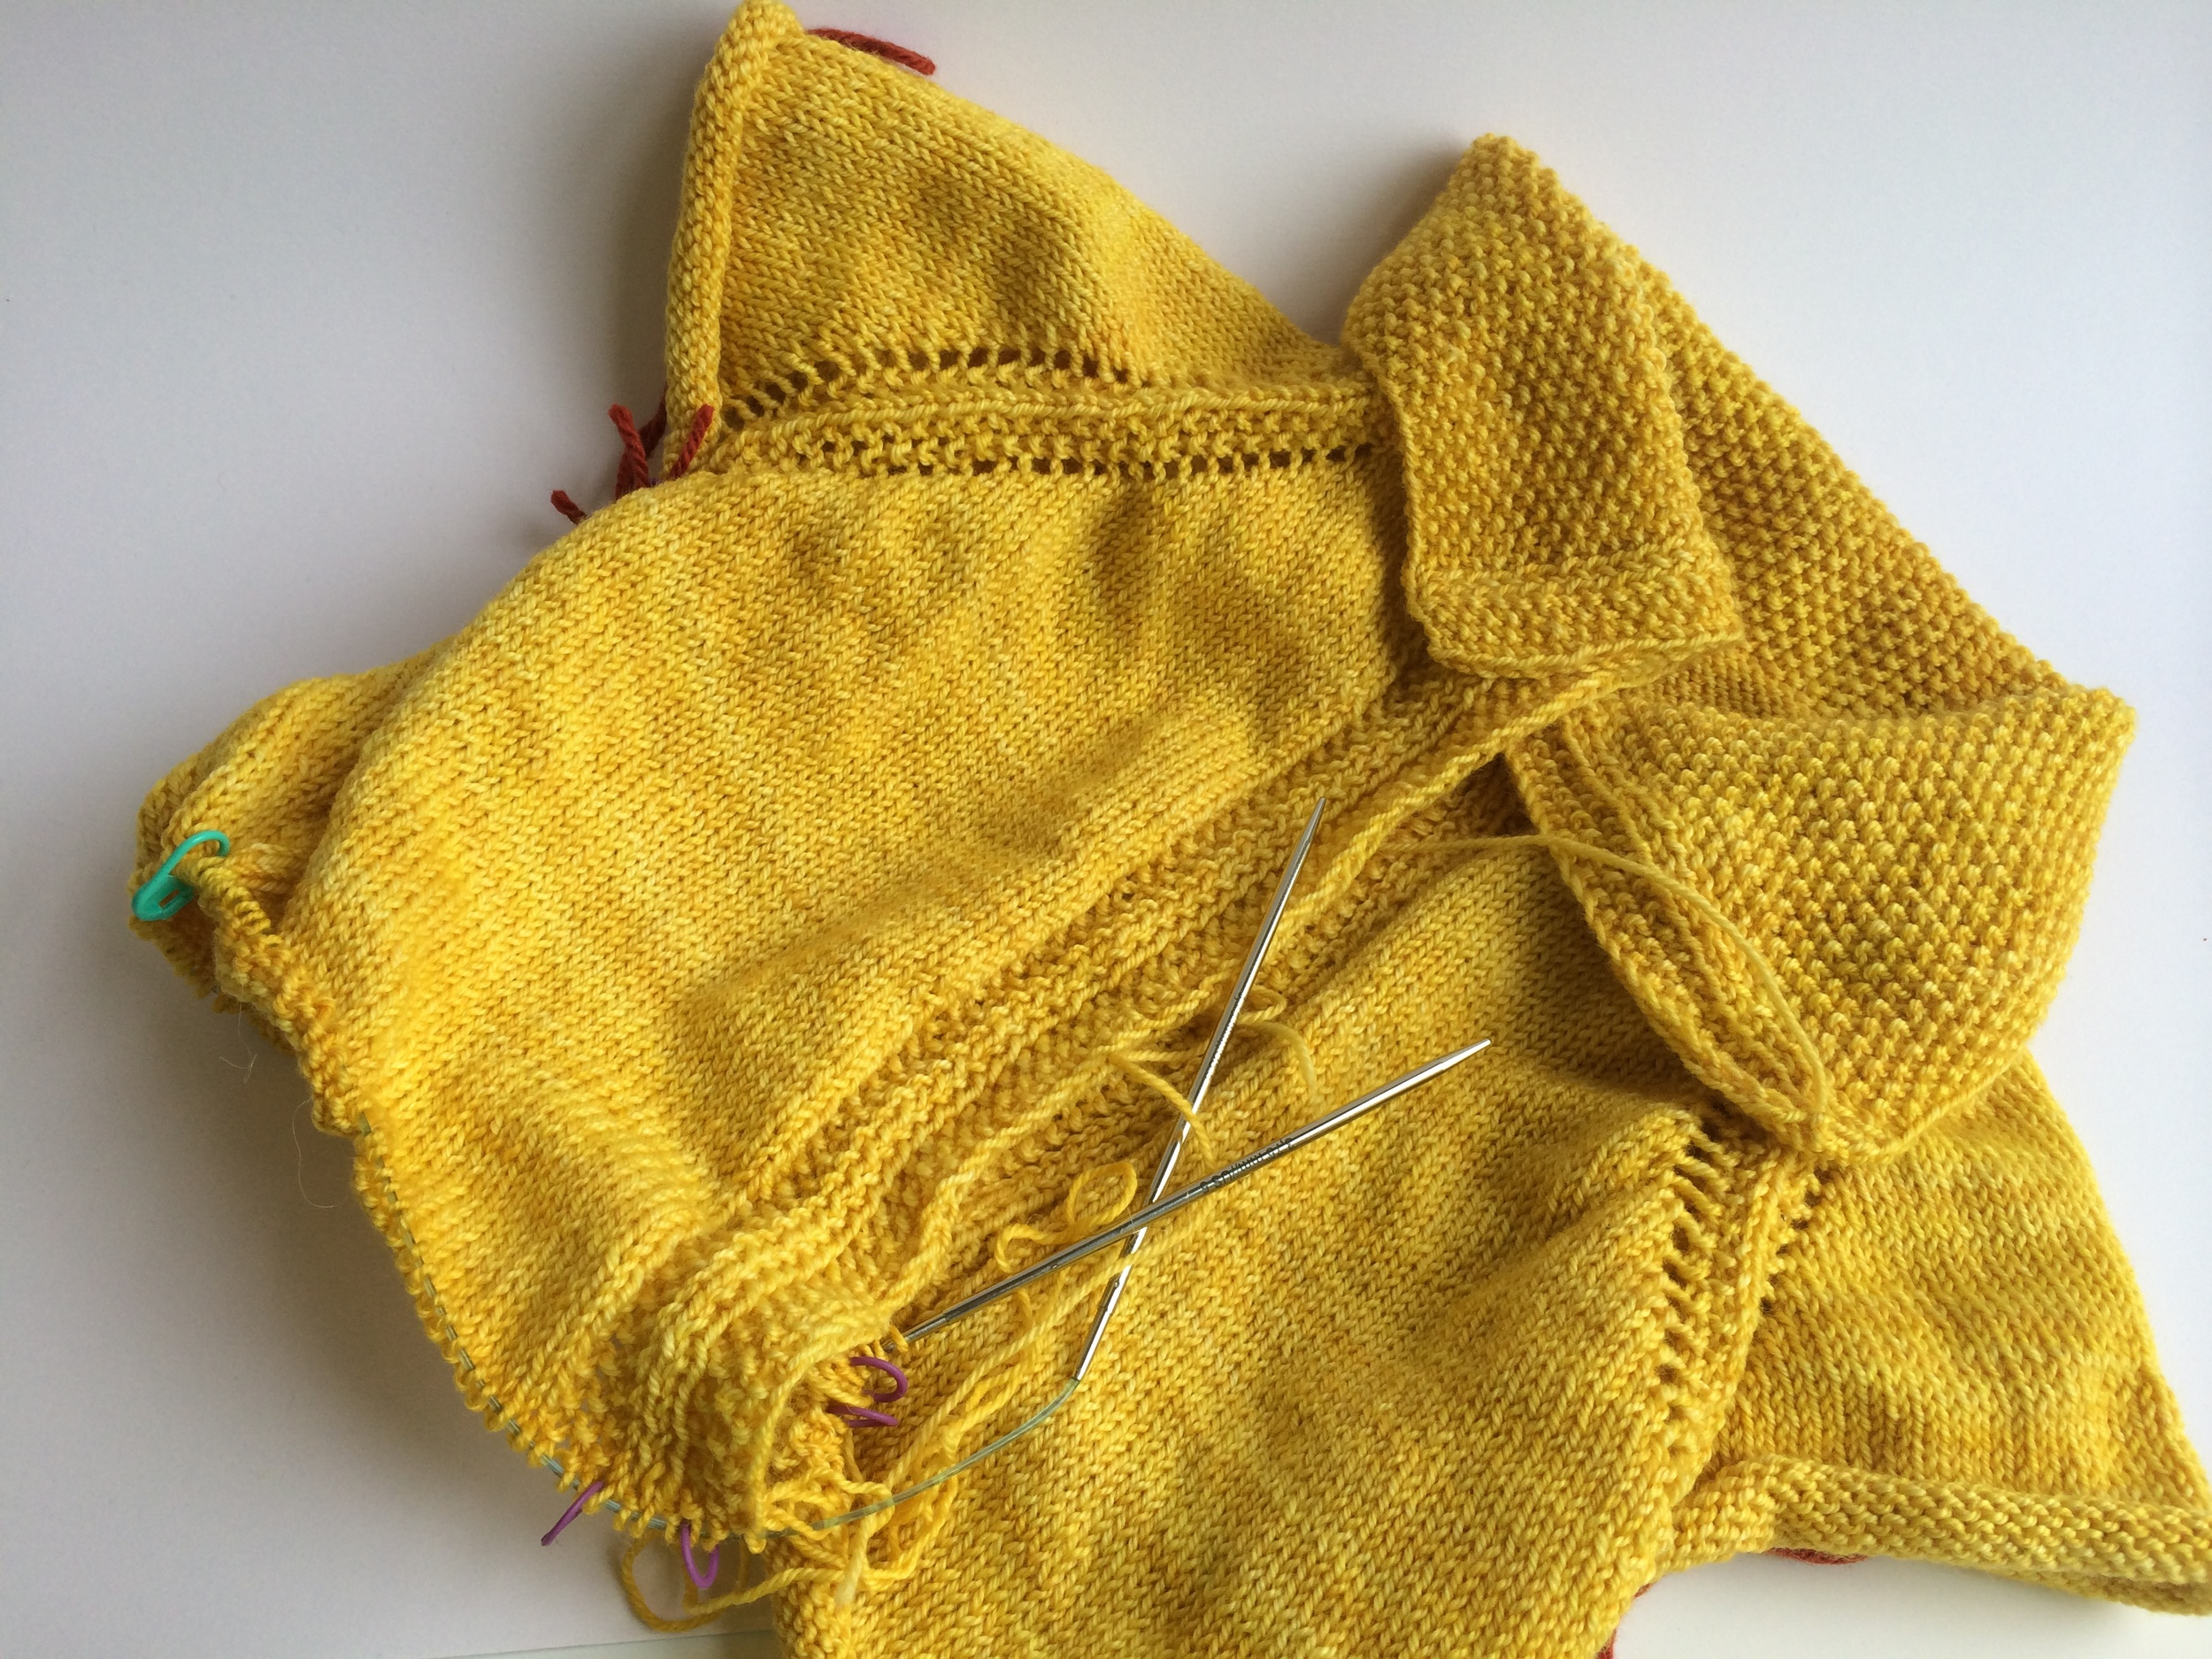 My Vodka Lemonade is coming along! Just finished the decreases for the waist and am knitting merrily away through the body now.